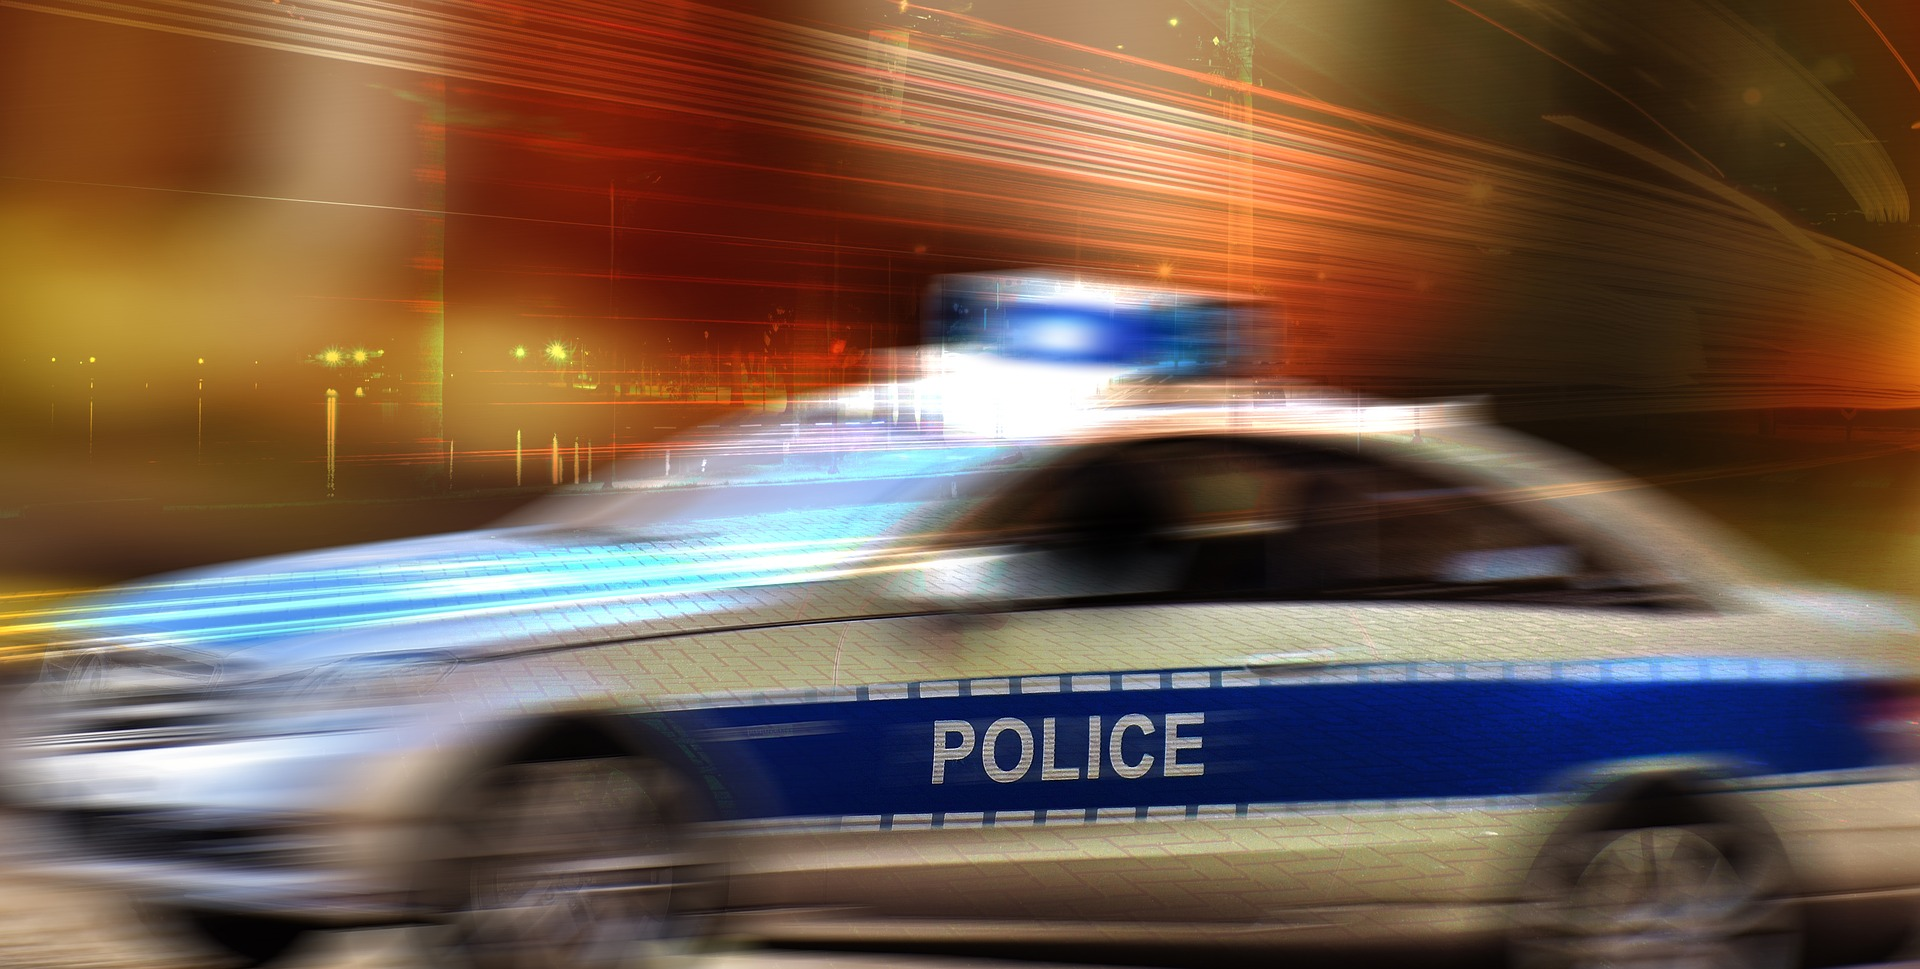 Photograph:  Speeding police car in a blur with its emergency lights on.